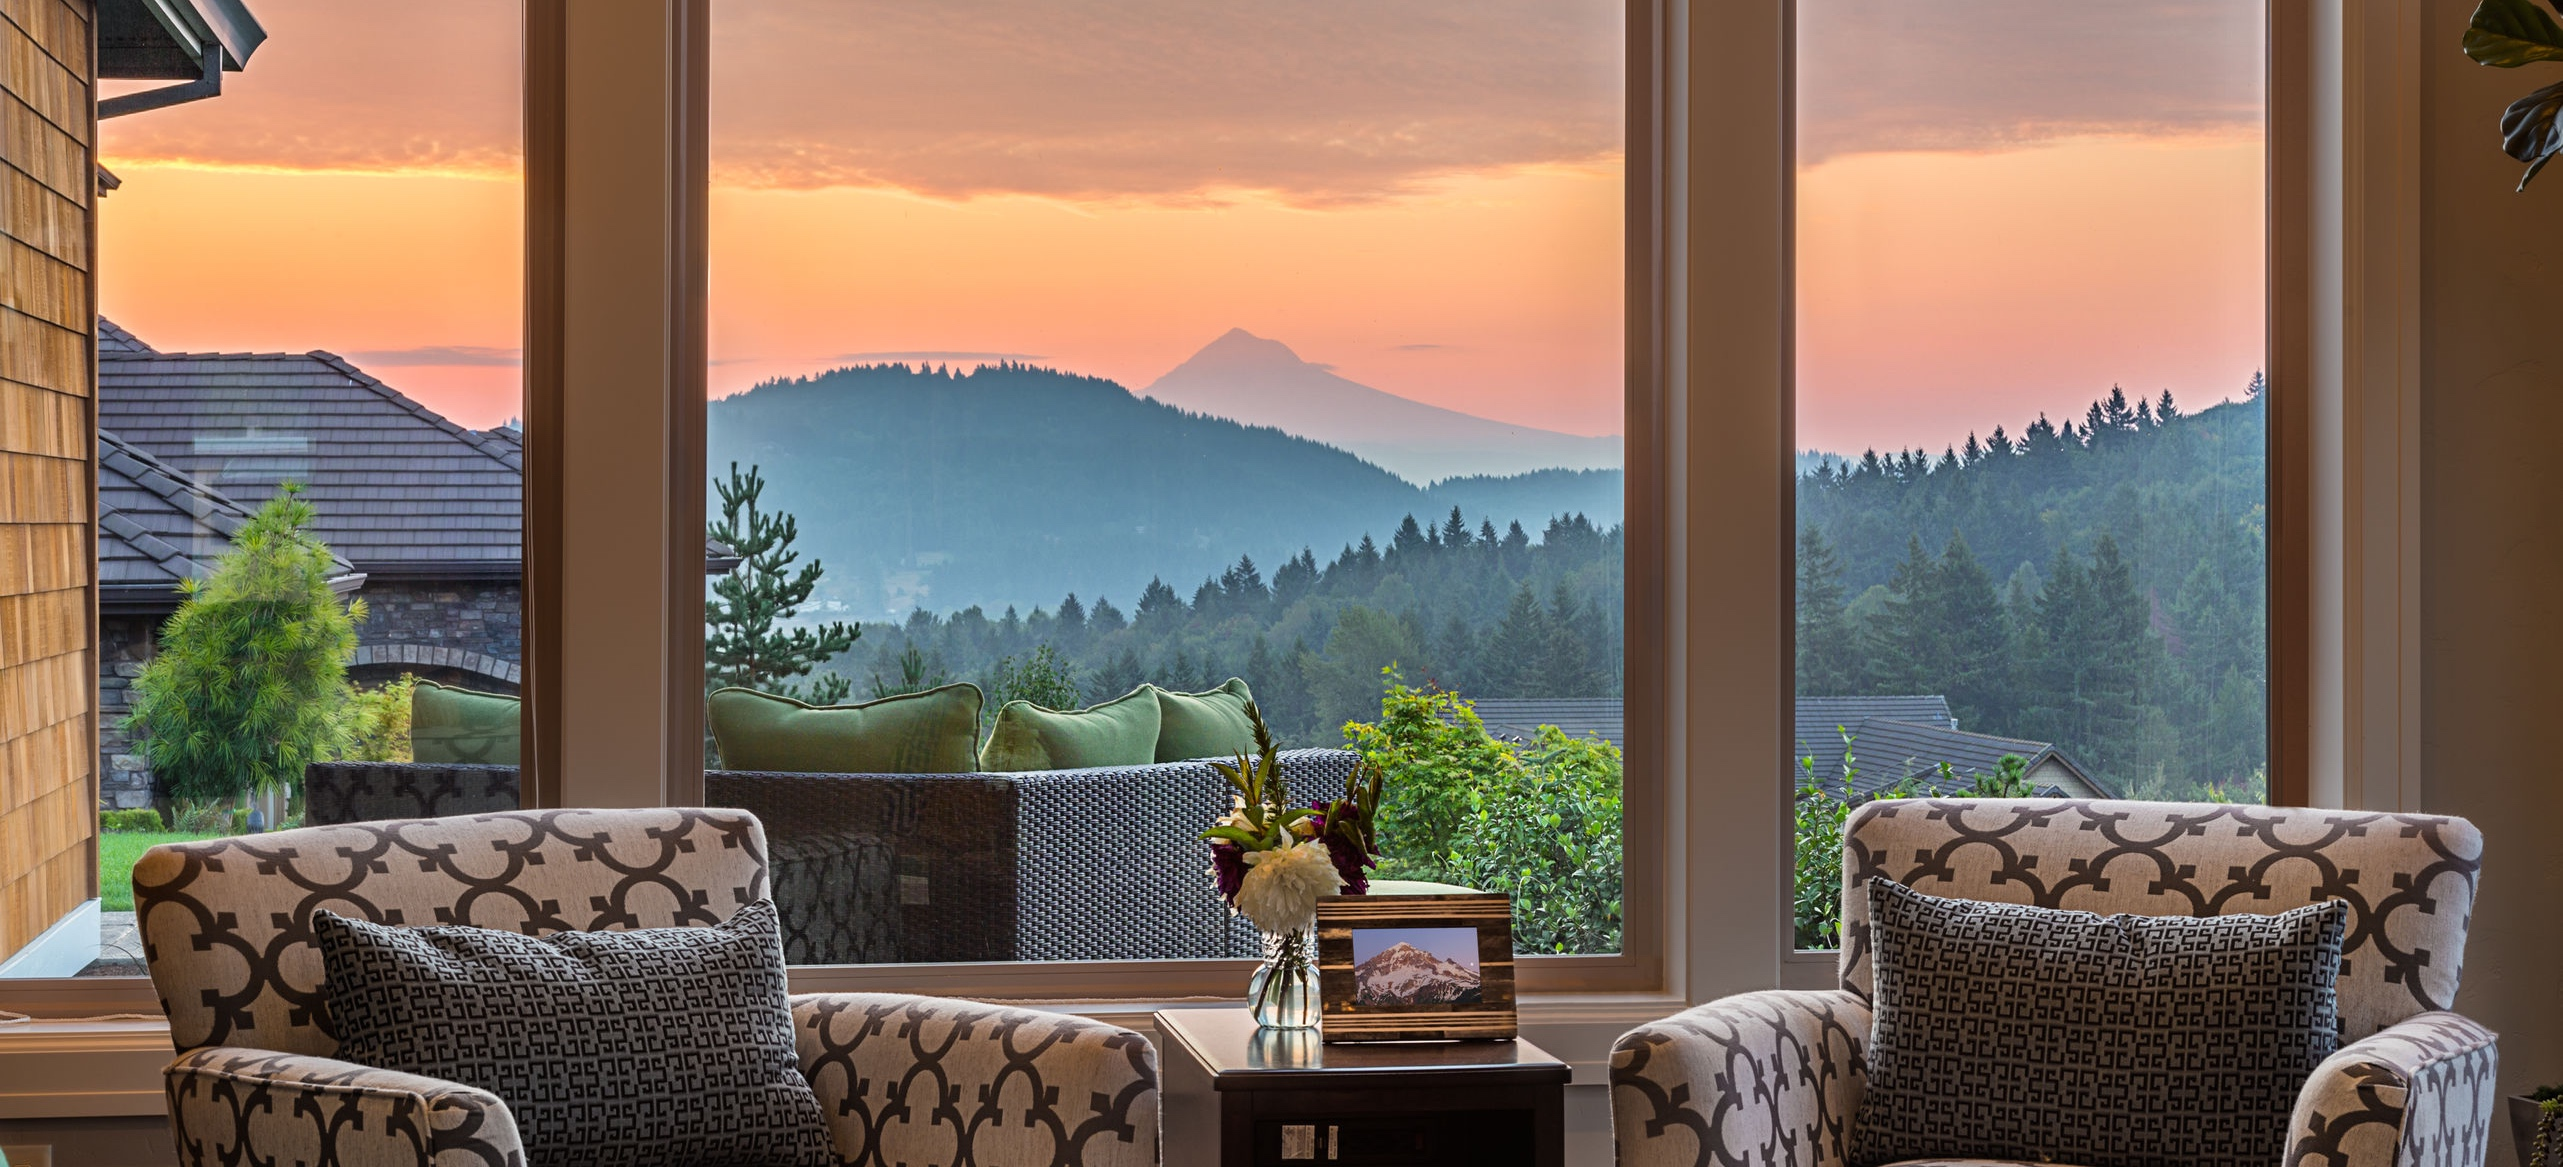 Gorgeous Sunset View from Living Room in New Mountain Home